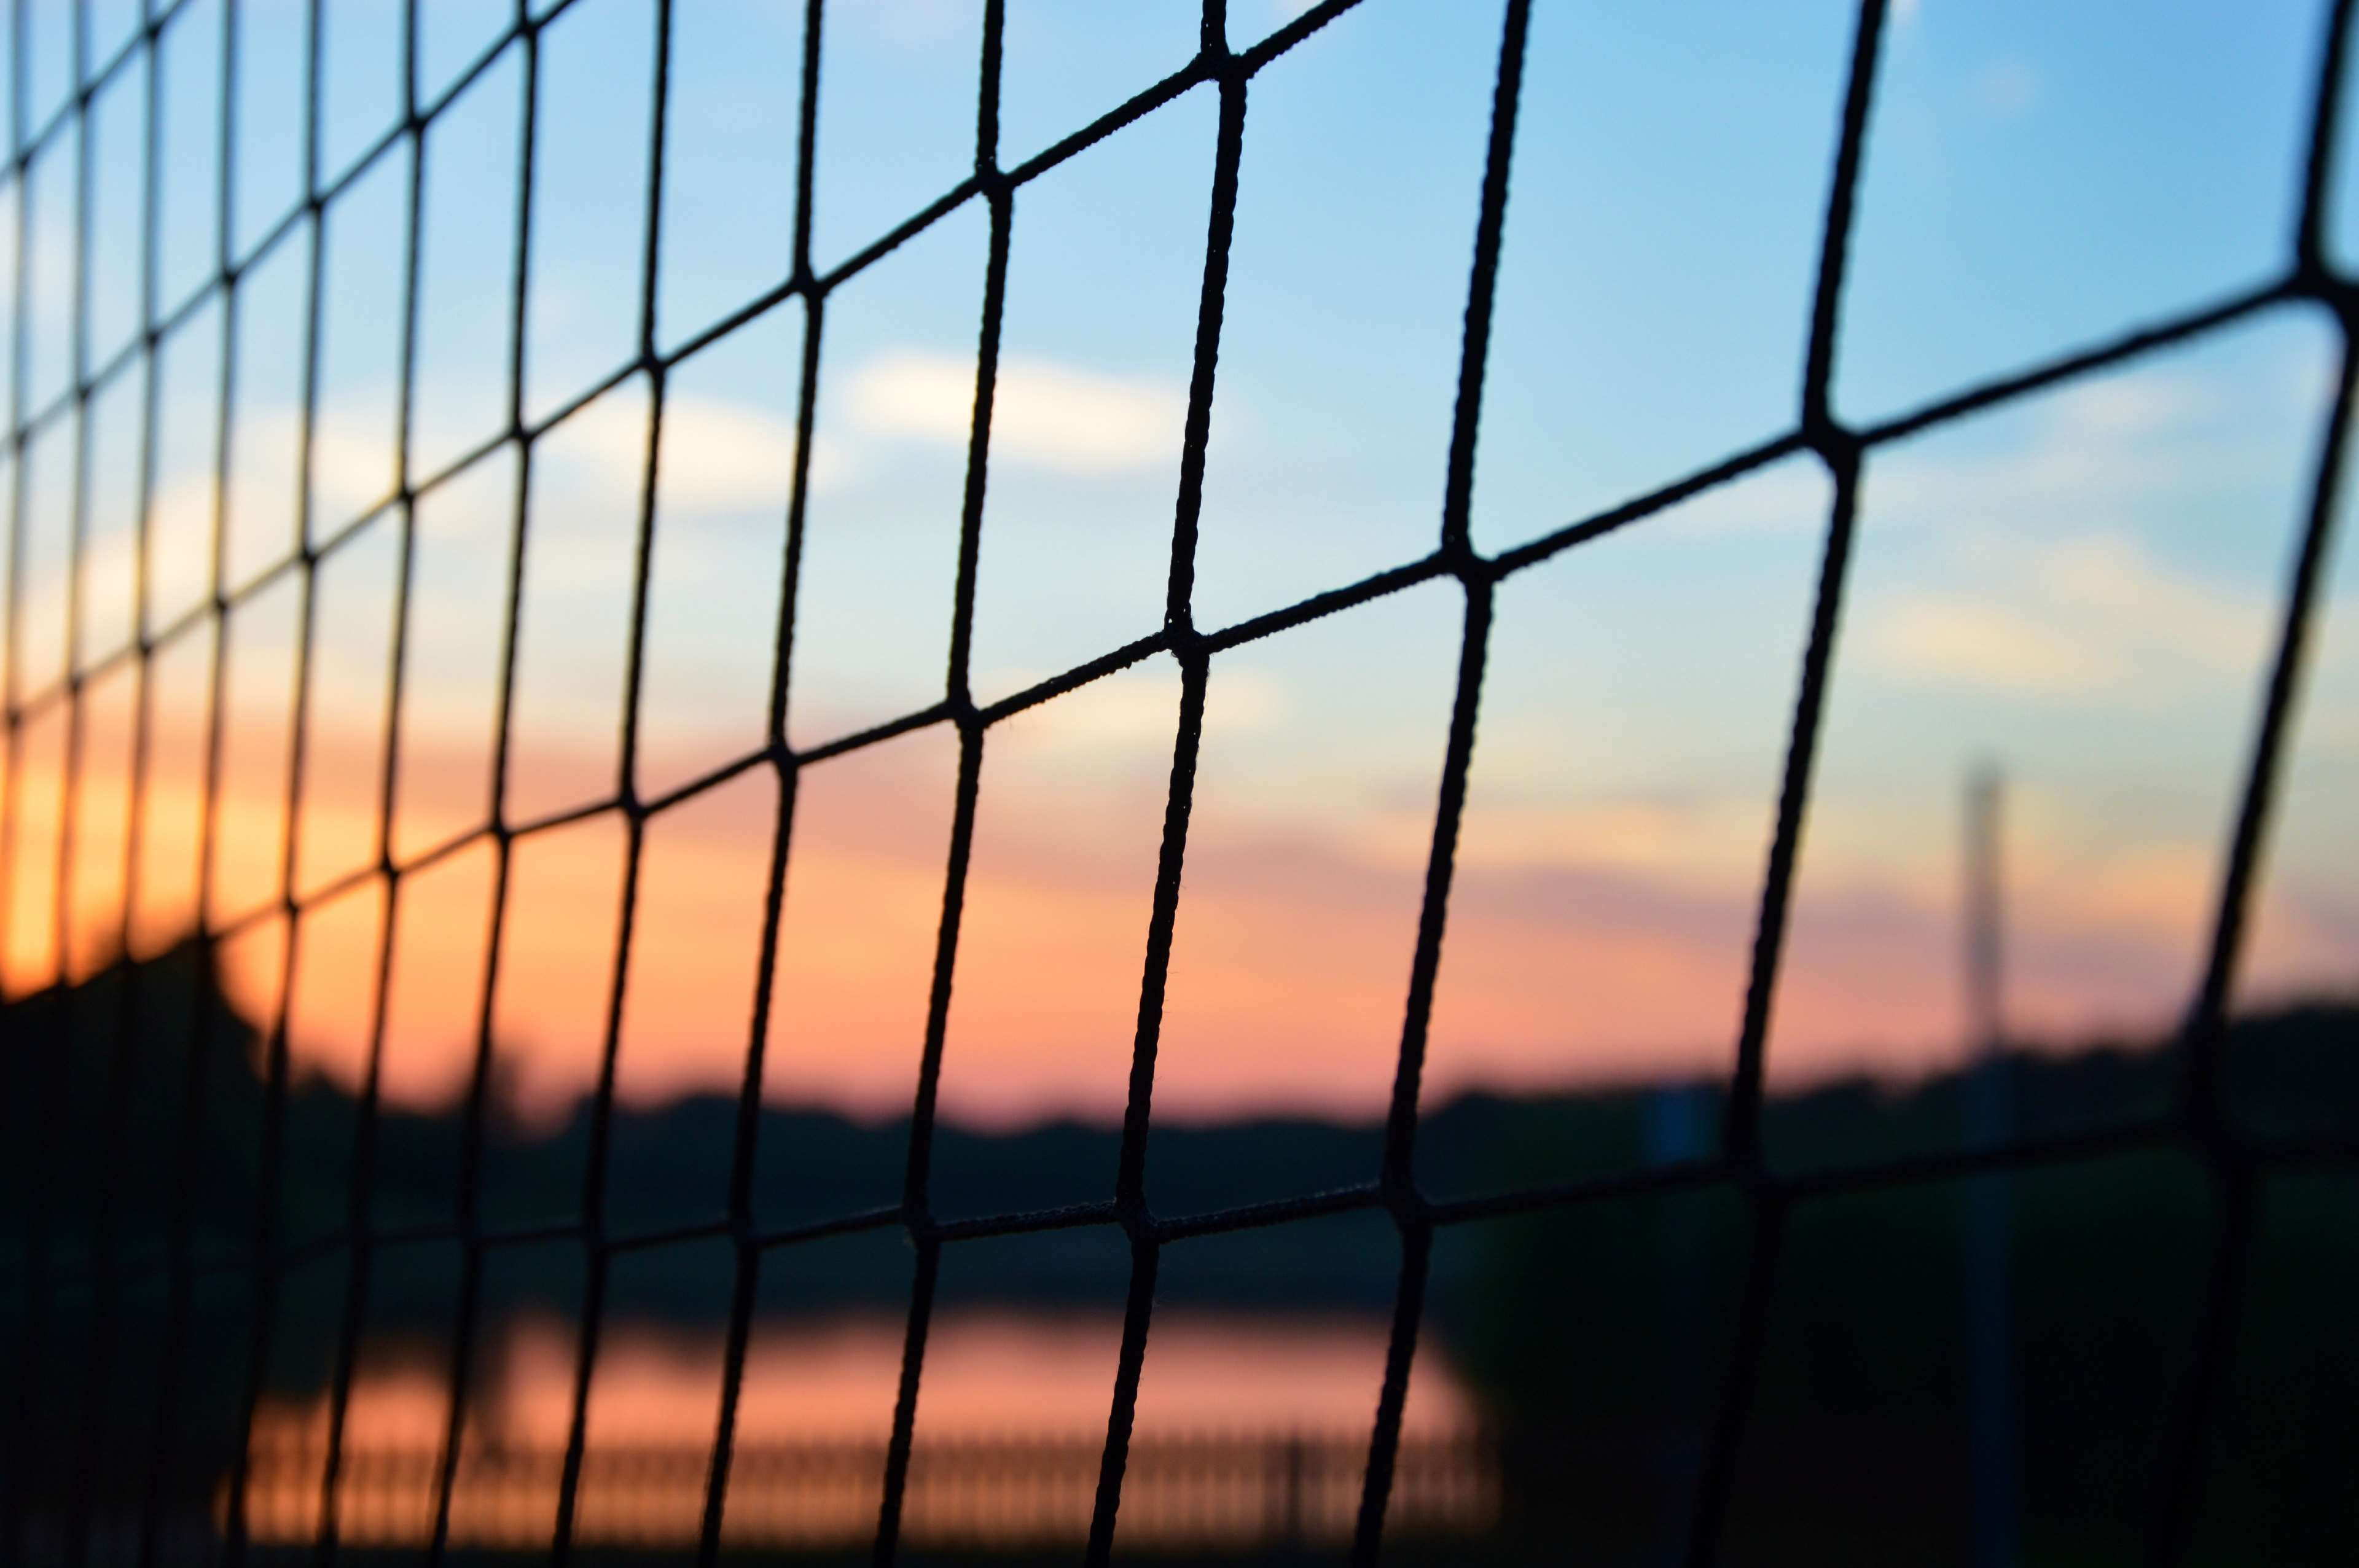 Colors Fence Lake Net Sky Summer Sunset Volleyball Volleyball Wallpaper Volleyball Inspiration Volleyball